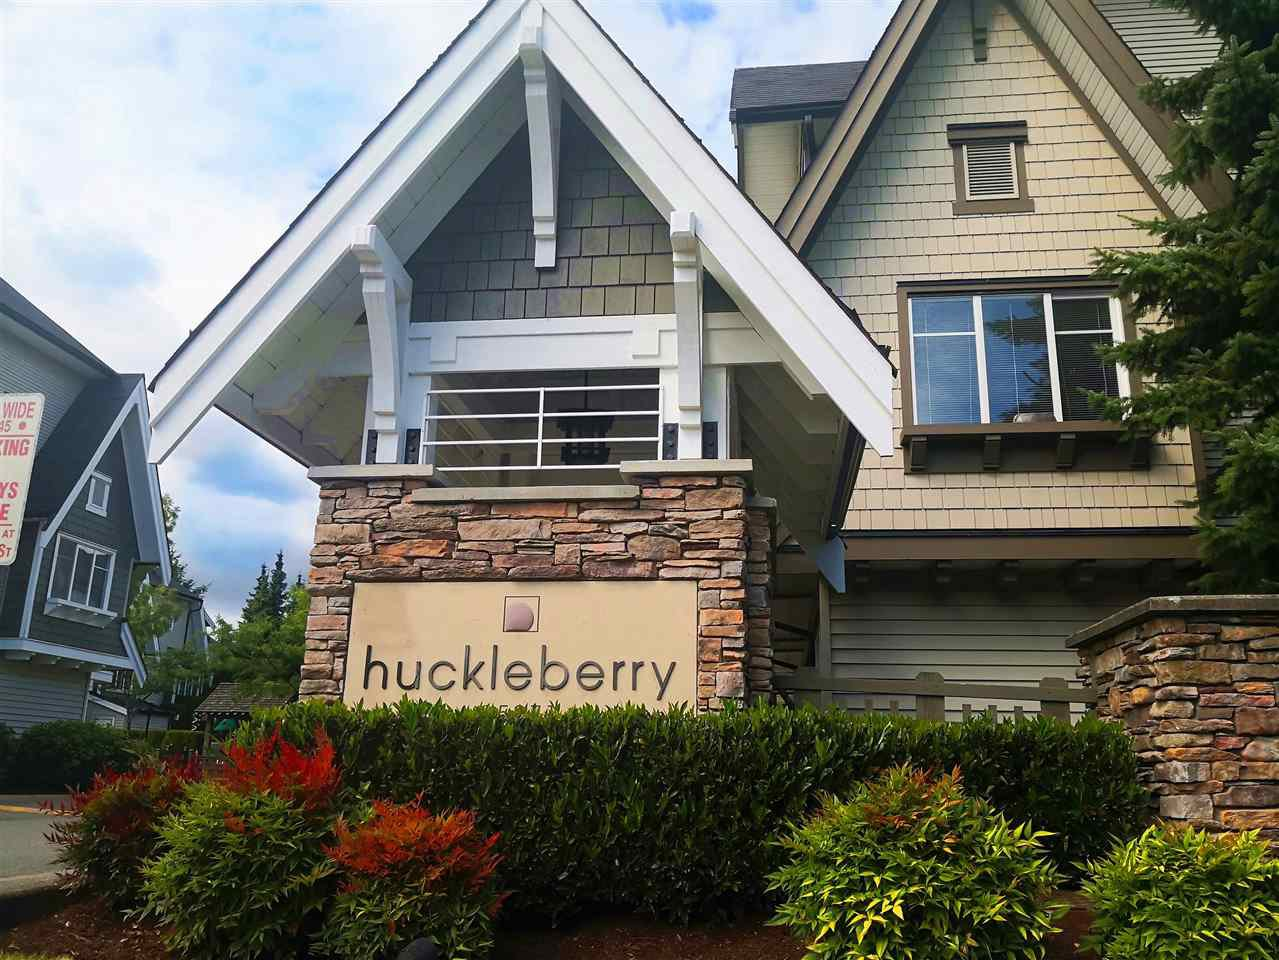 "Main Photo: 48 15871 85 Avenue in Surrey: Fleetwood Tynehead Townhouse for sale in ""HUCKLEBERRY"" : MLS®# R2494639"